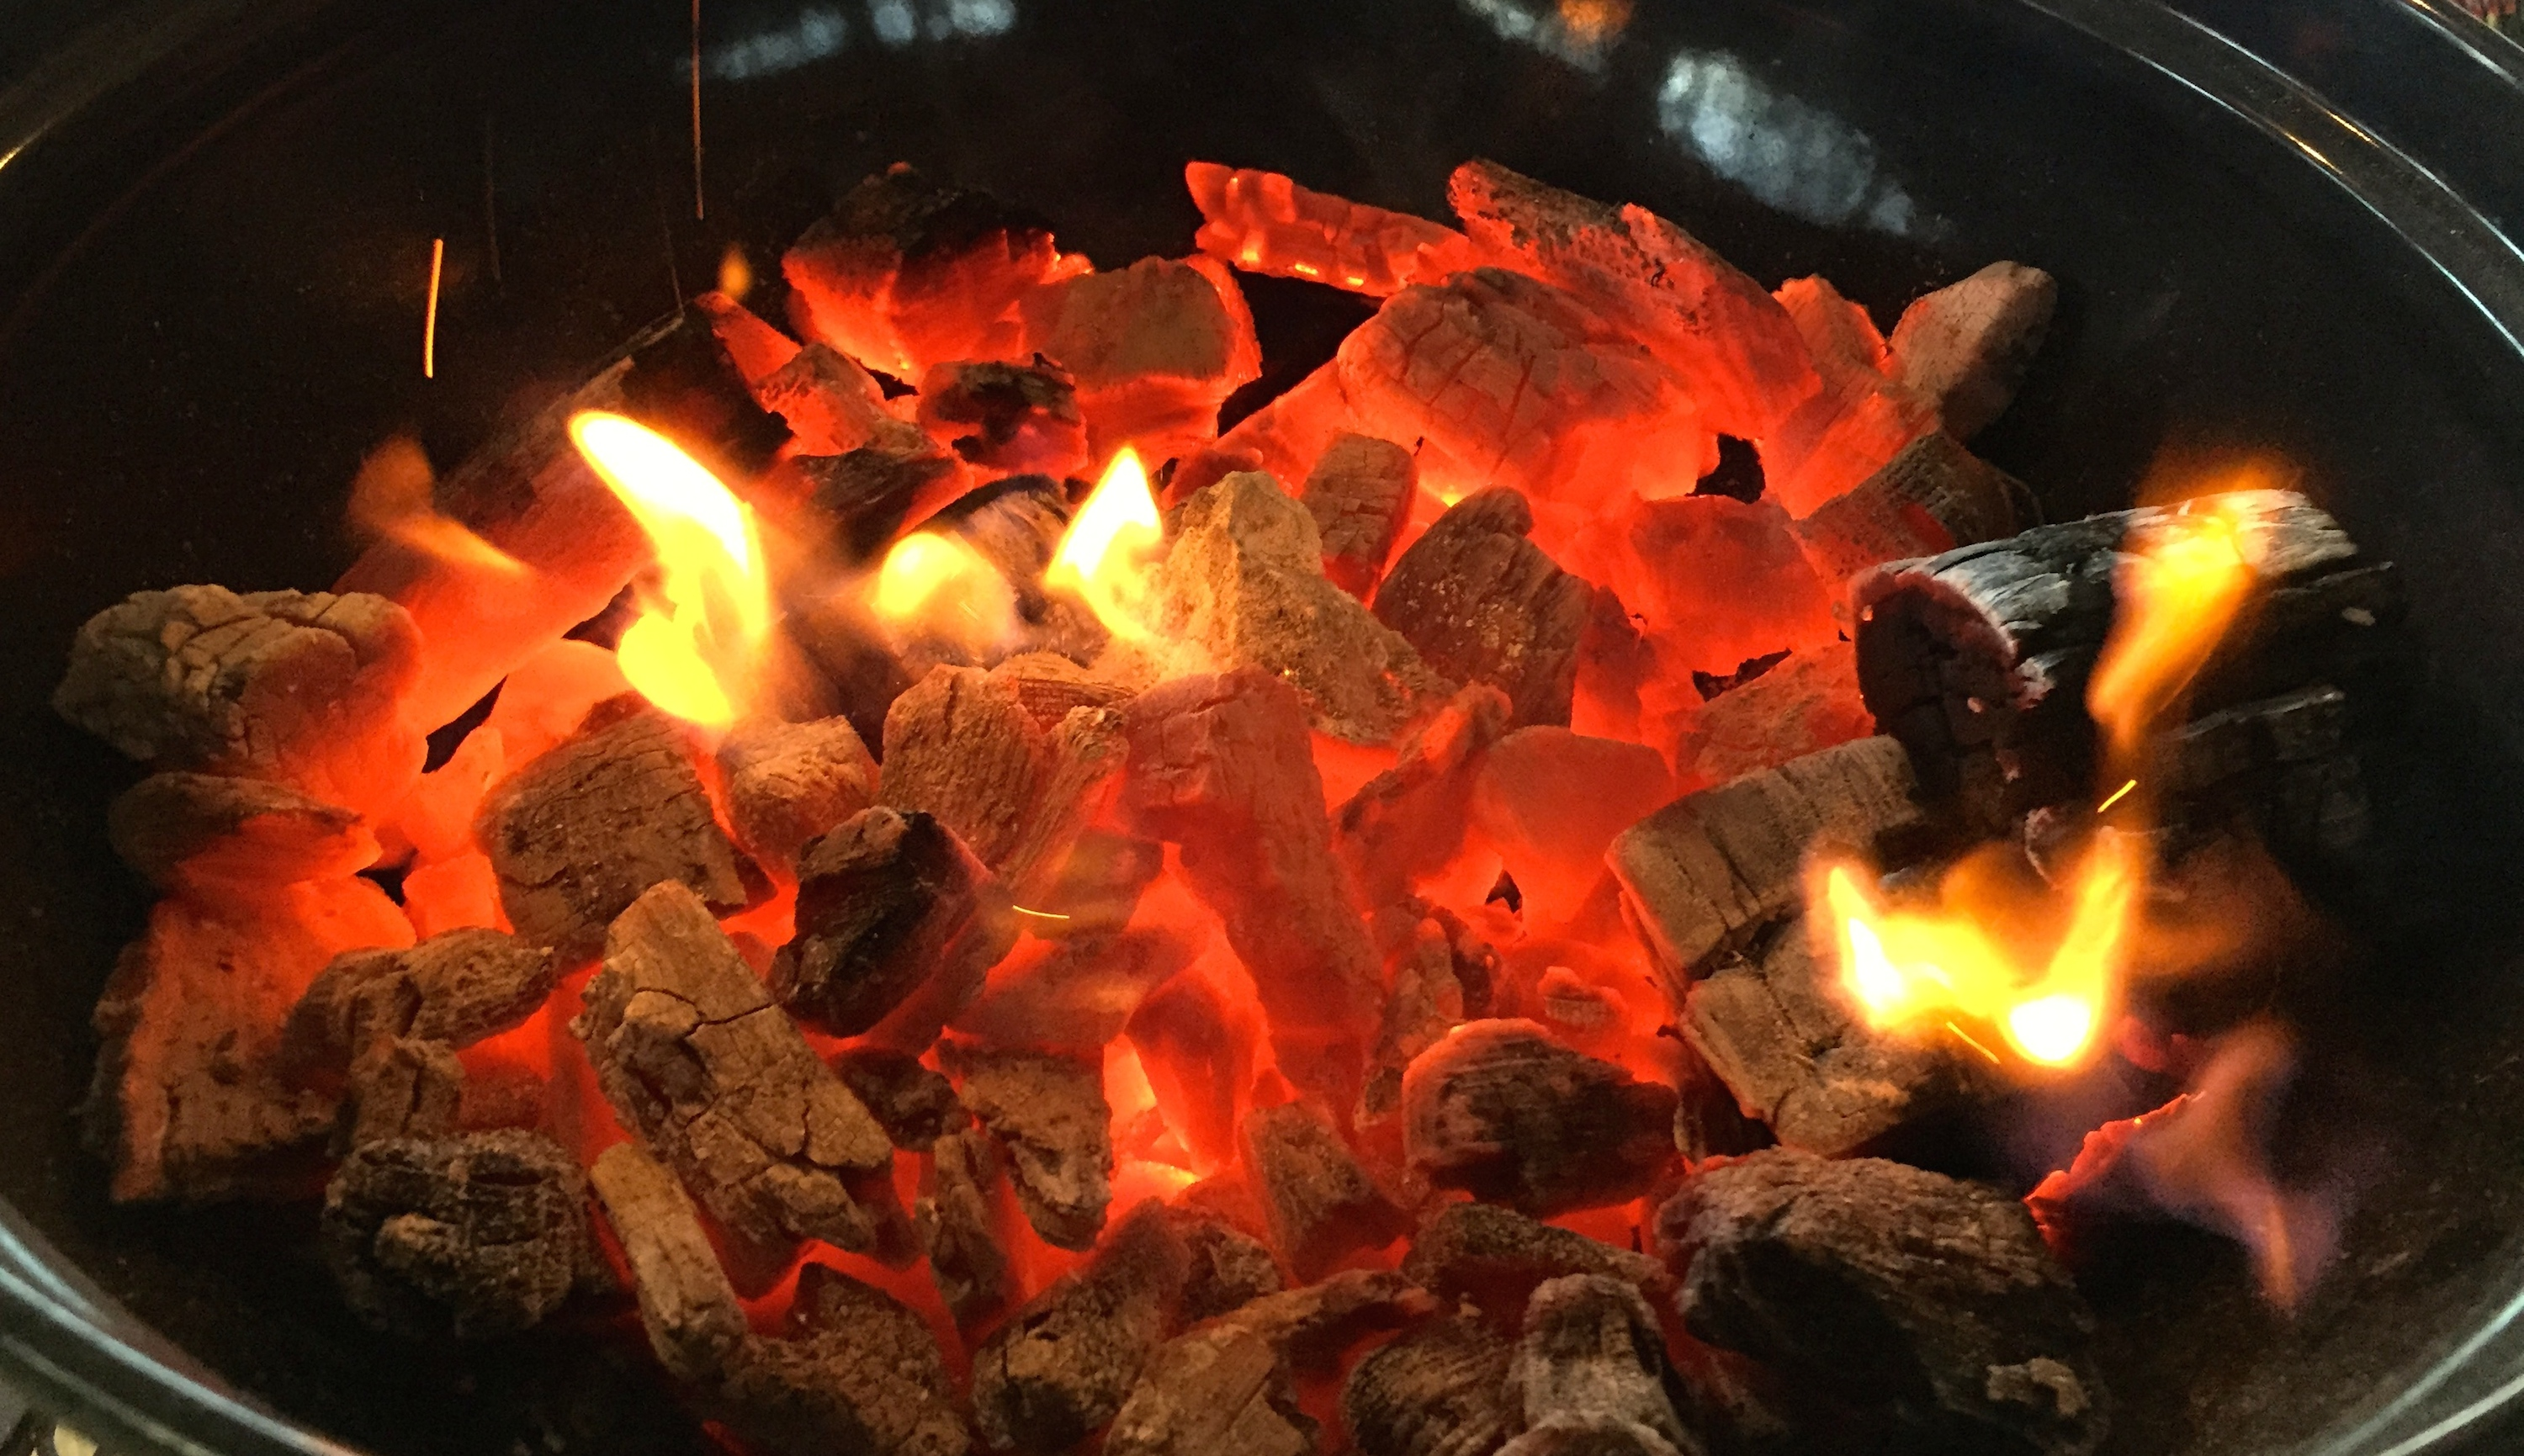 coals ready to cook